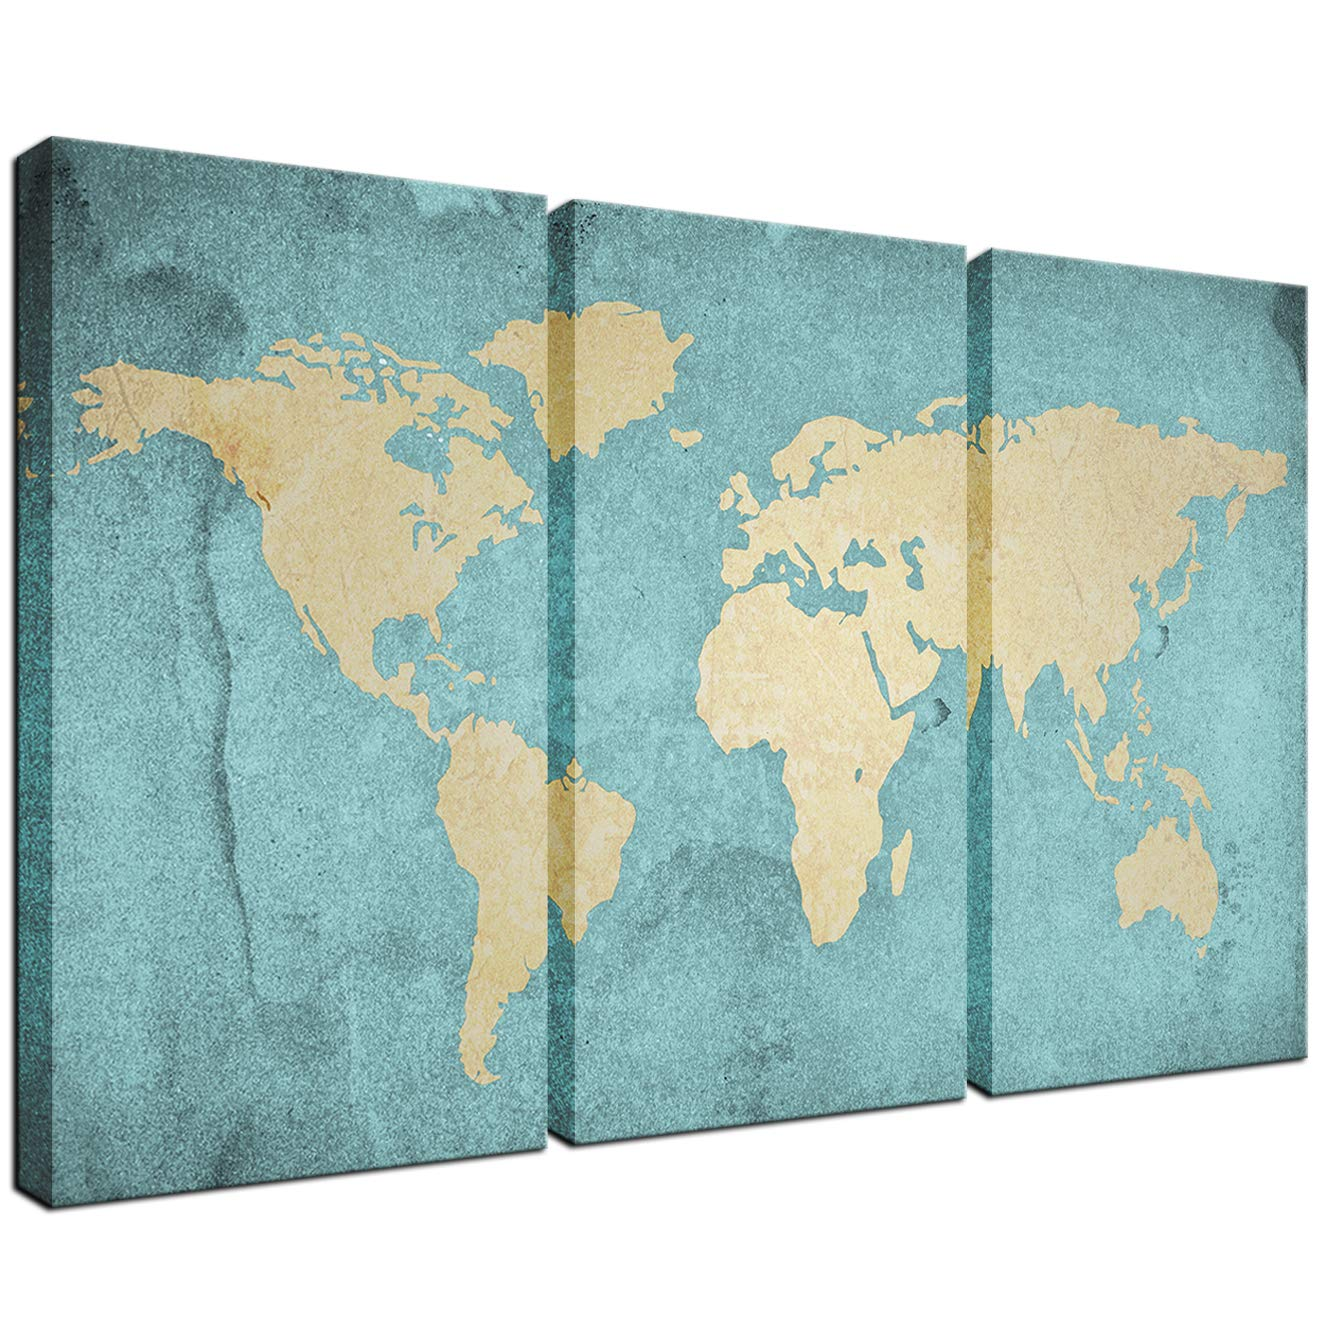 Details about Large Size World Map Canvas Prints Vintage Style, Antique  Blue Map of the World